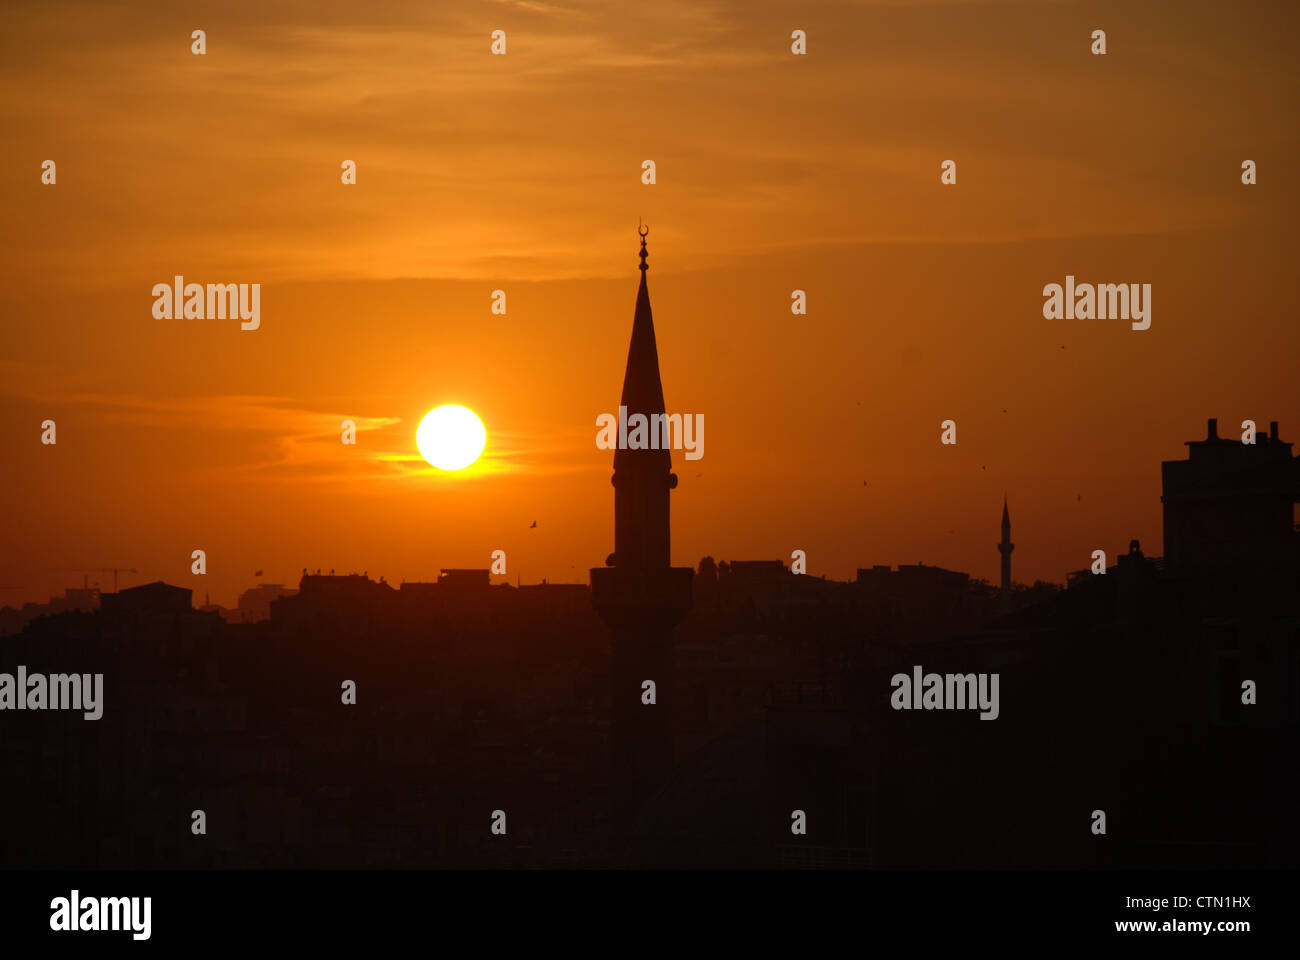 Istanbul at sunset. Picture by: Adam Alexander/Alamy Stock Photo